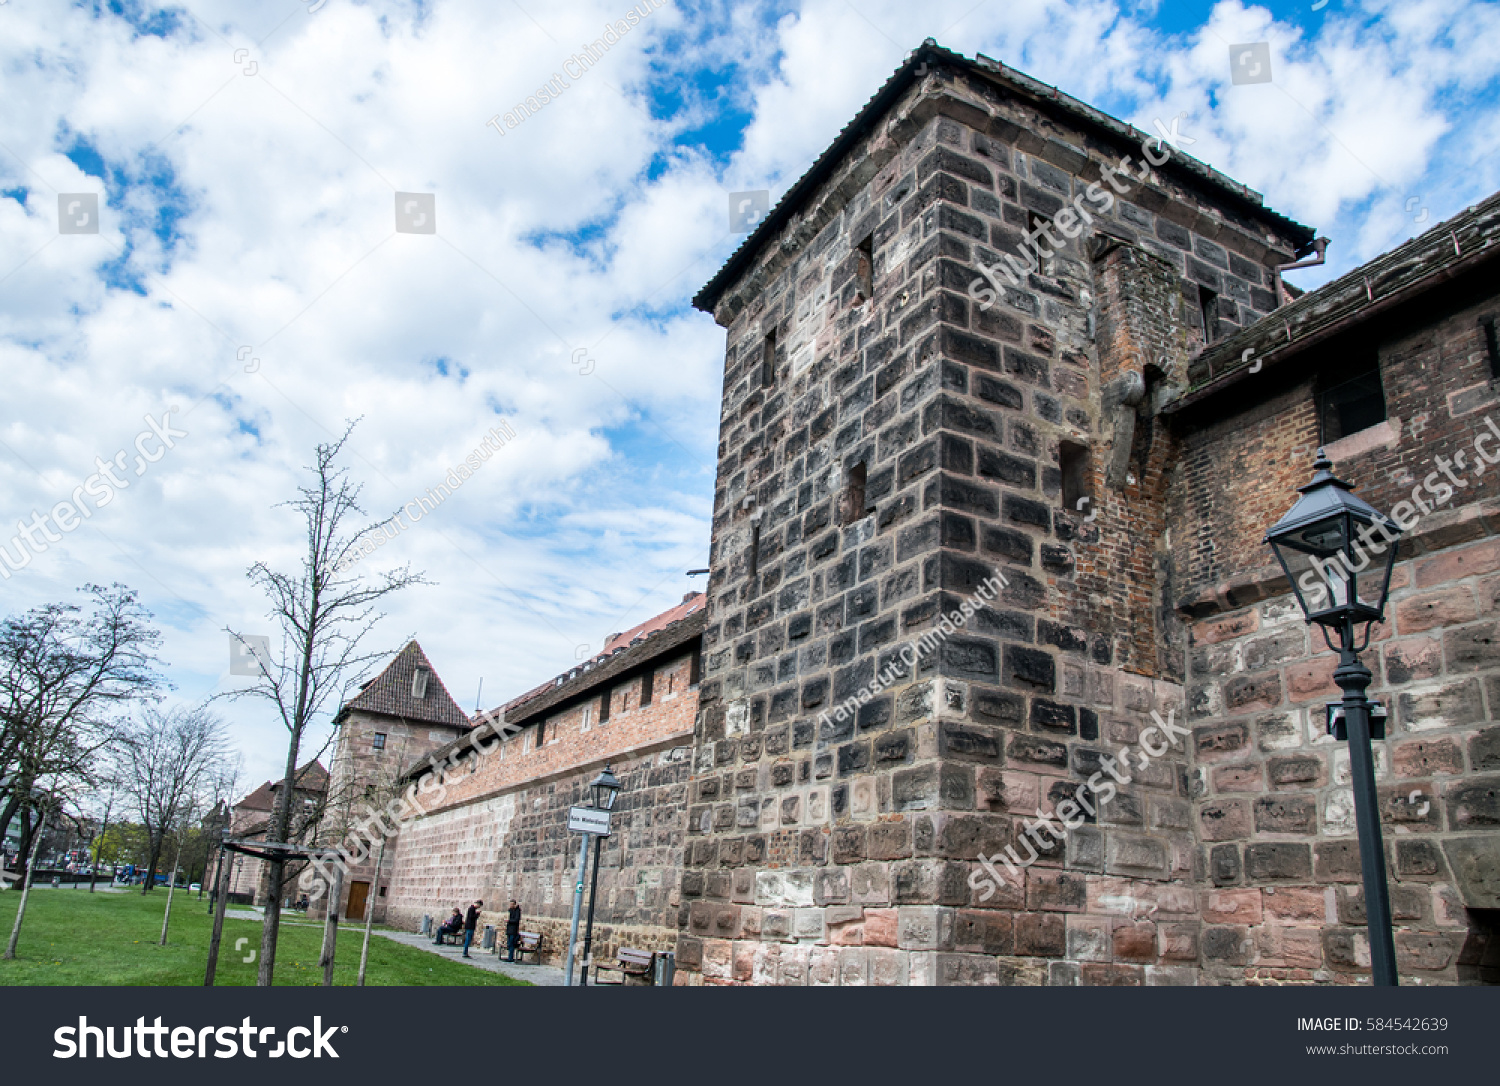 Sanders Nürnberg Nuremberg Germany April 13 2016 Old Stock Photo Edit Now